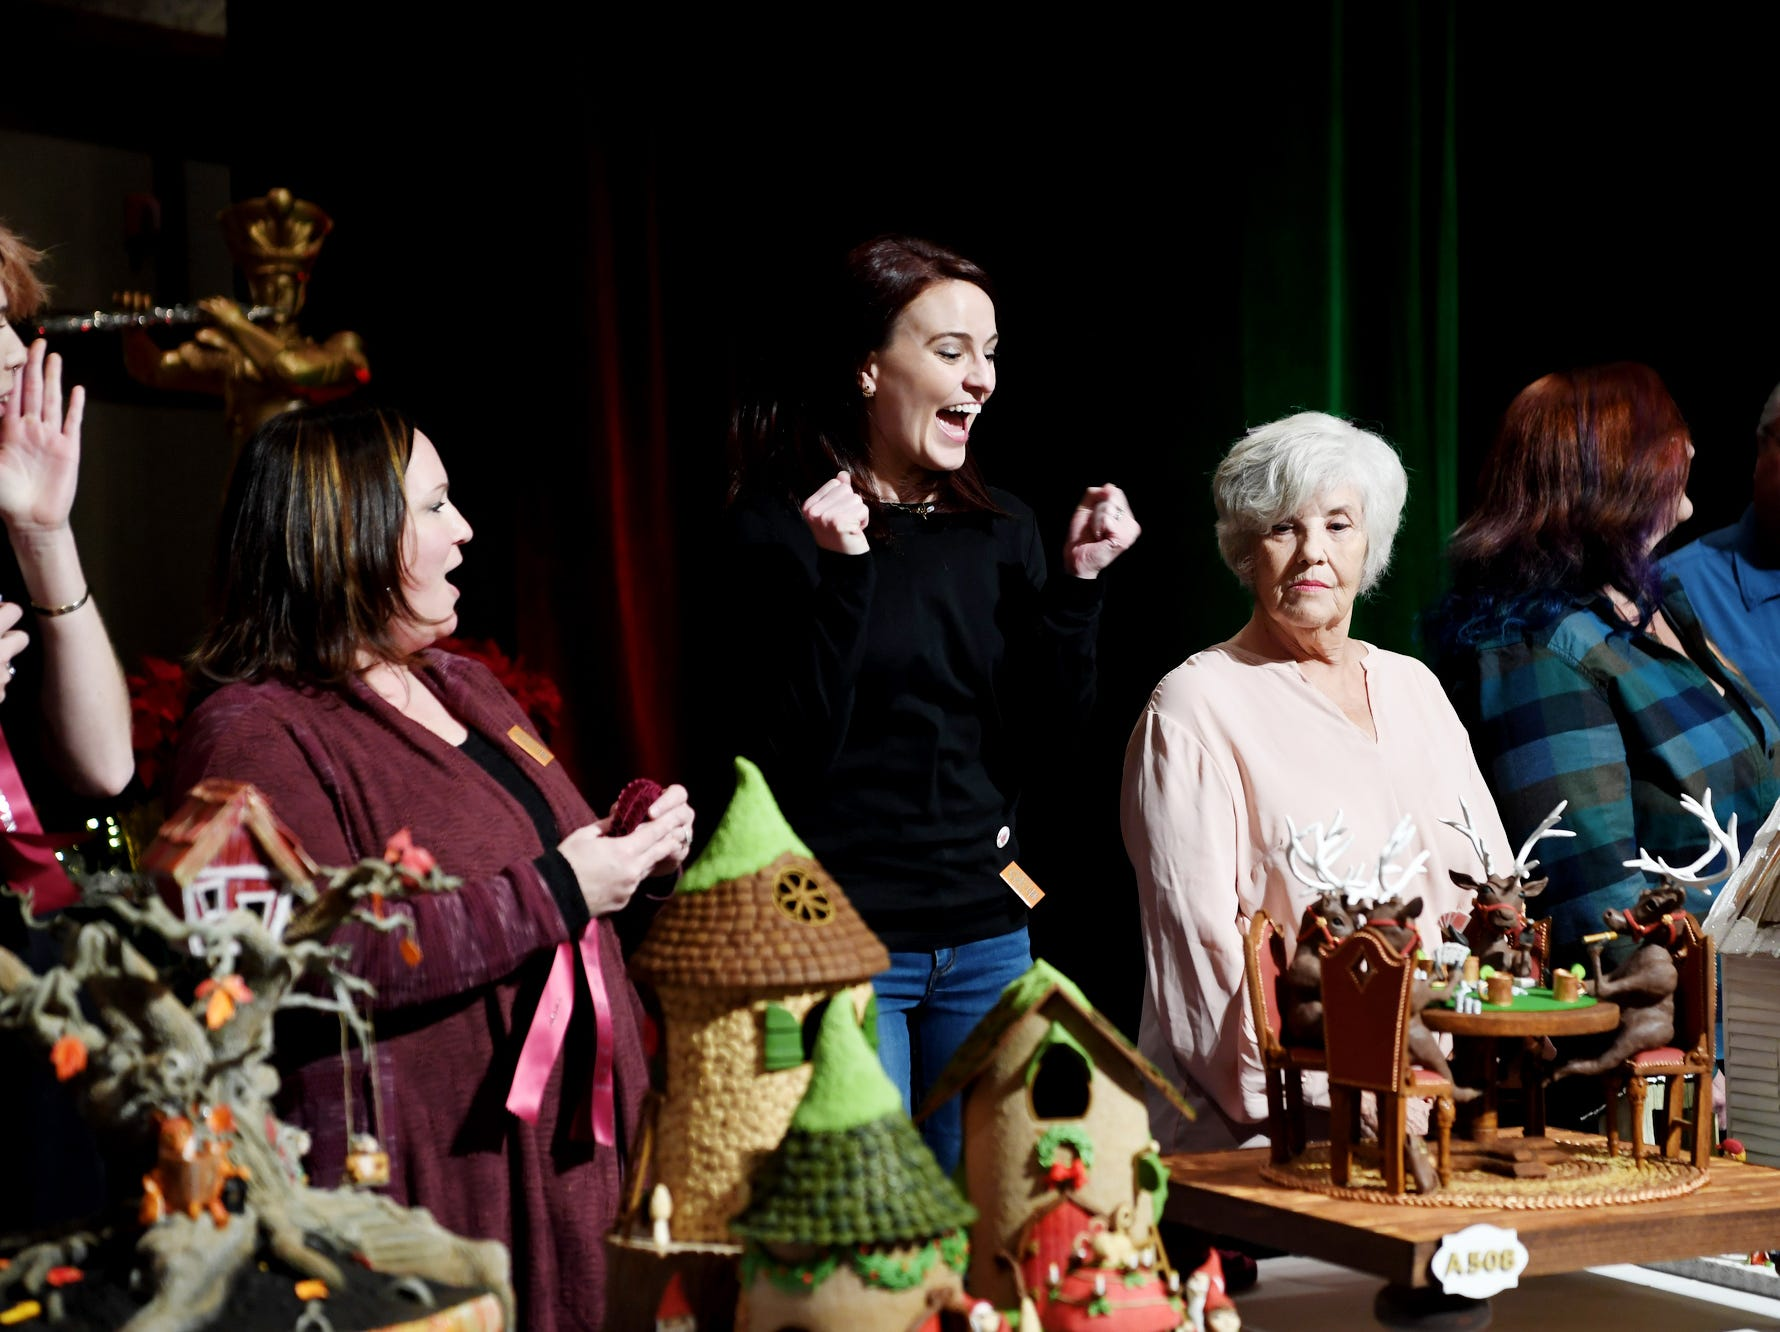 """Grier Rubeling reacts as her entry, """"Reindeer playing Poker,"""" is announced the third-place winner in the Omni Grove Park Inn's annual gingerbread competition Nov. 19, 2018."""